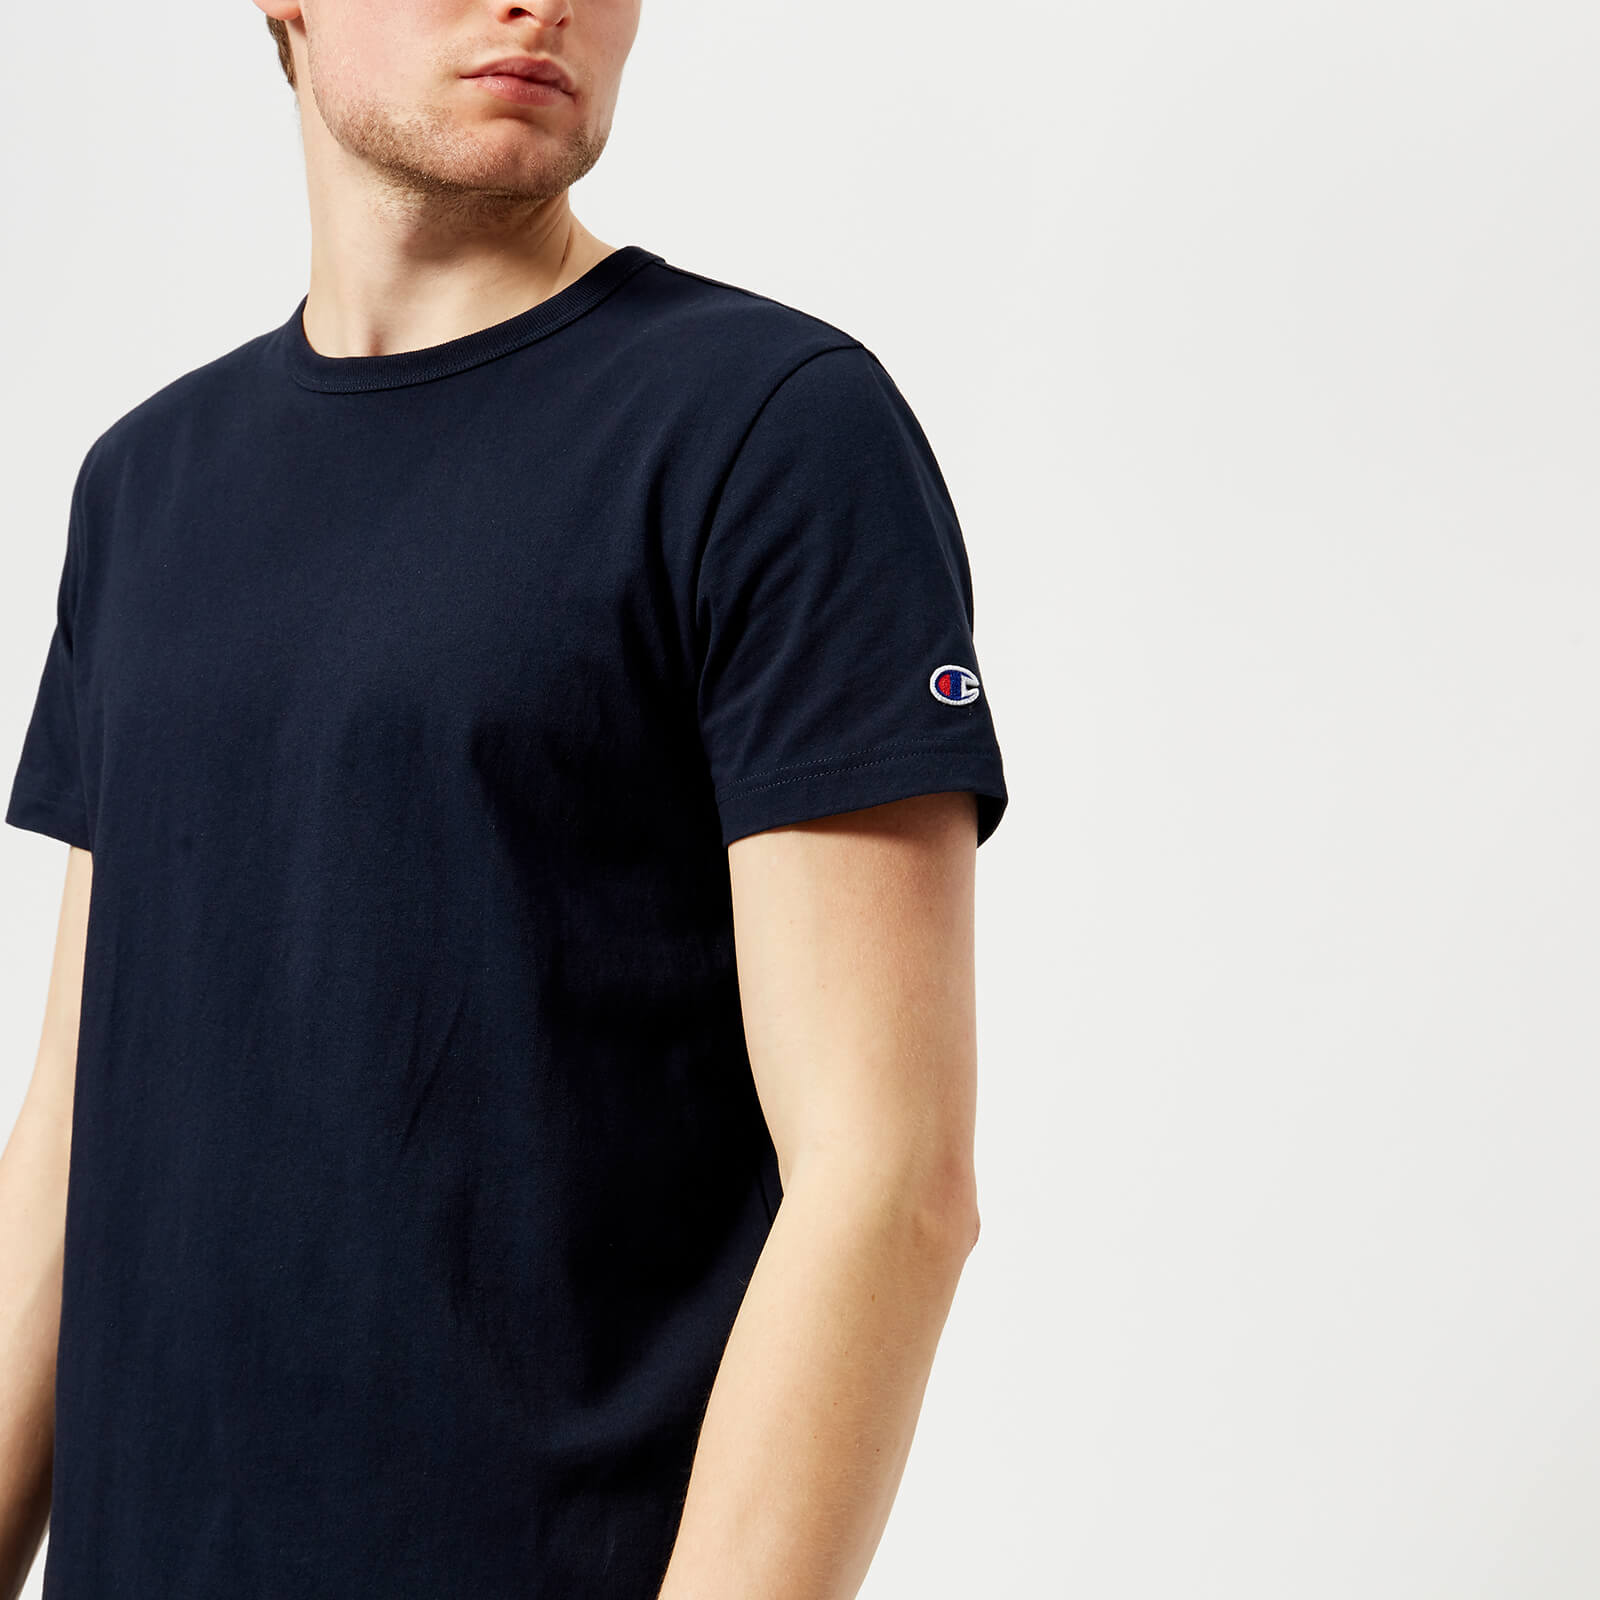 5252029a5e53f Champion Men s Short Sleeve Logo T-Shirt - Navy - Free UK Delivery over £50